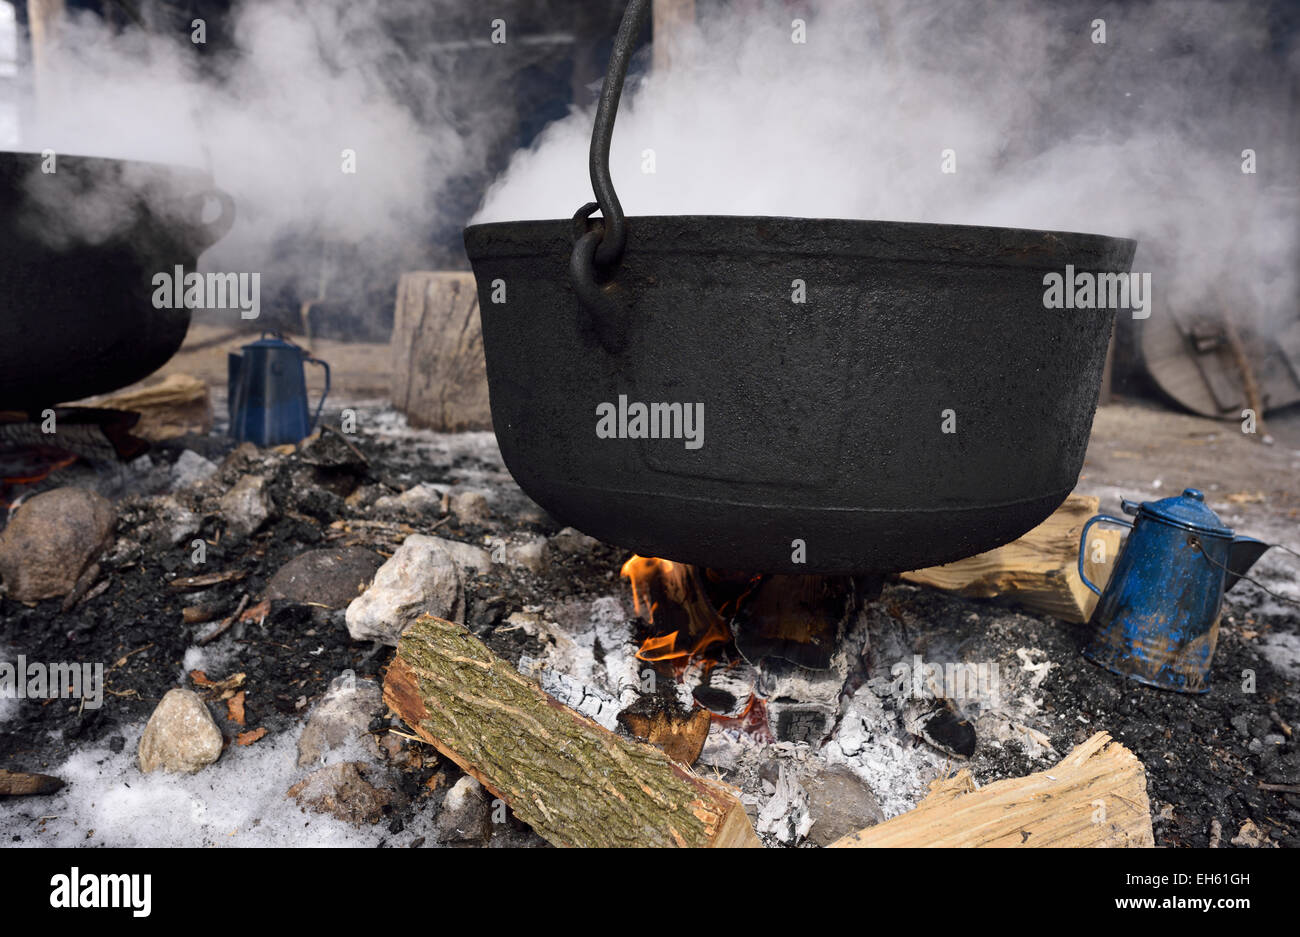 Traditional method of evaporating sap in cast iron cauldron outdoors to produce maple syrup Ontario Canada Stock Photo